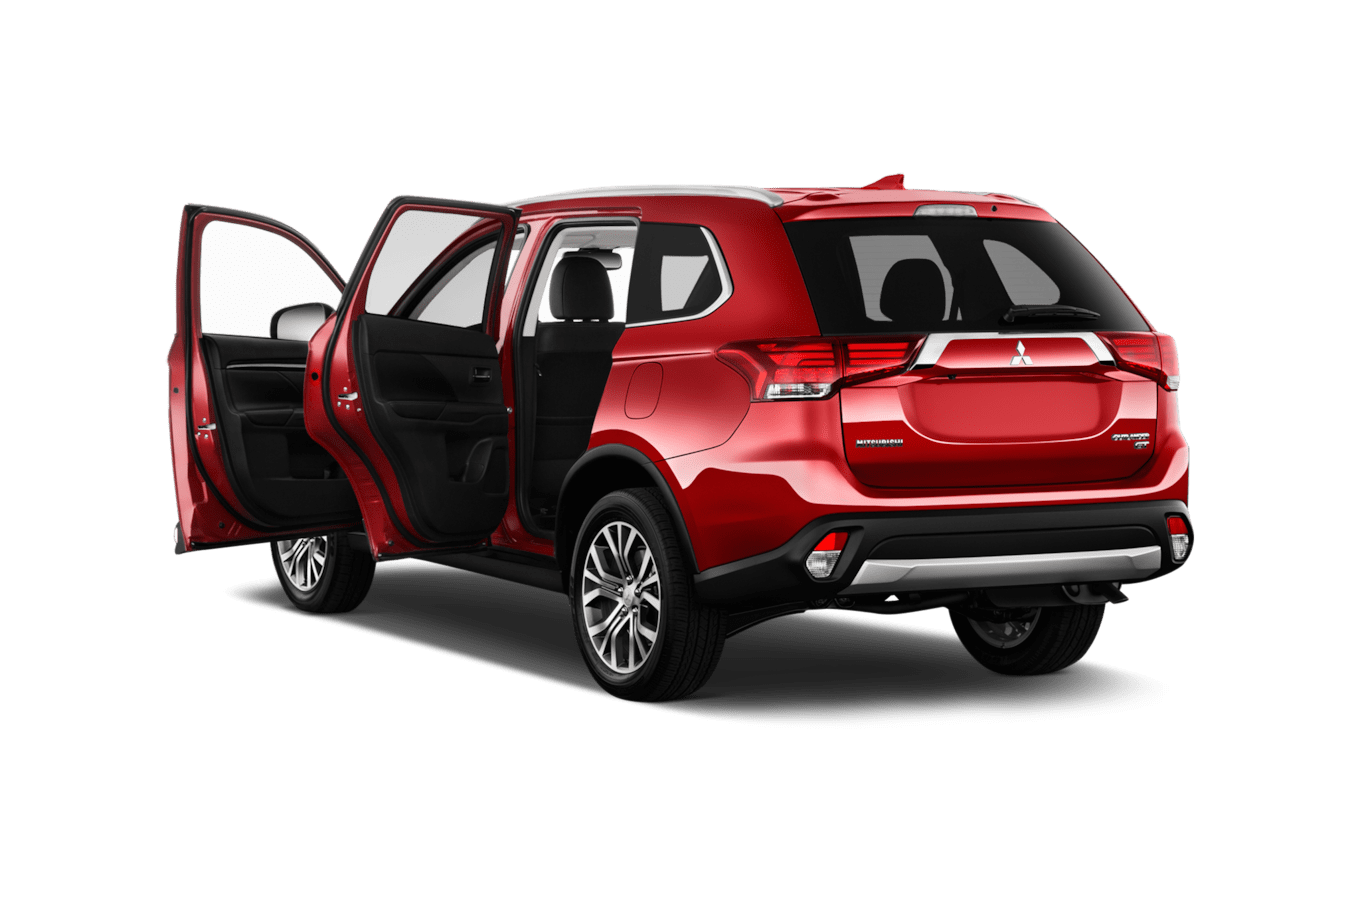 hight resolution of 2018 mitsubishi outlander reviews and rating motor trend 14 25